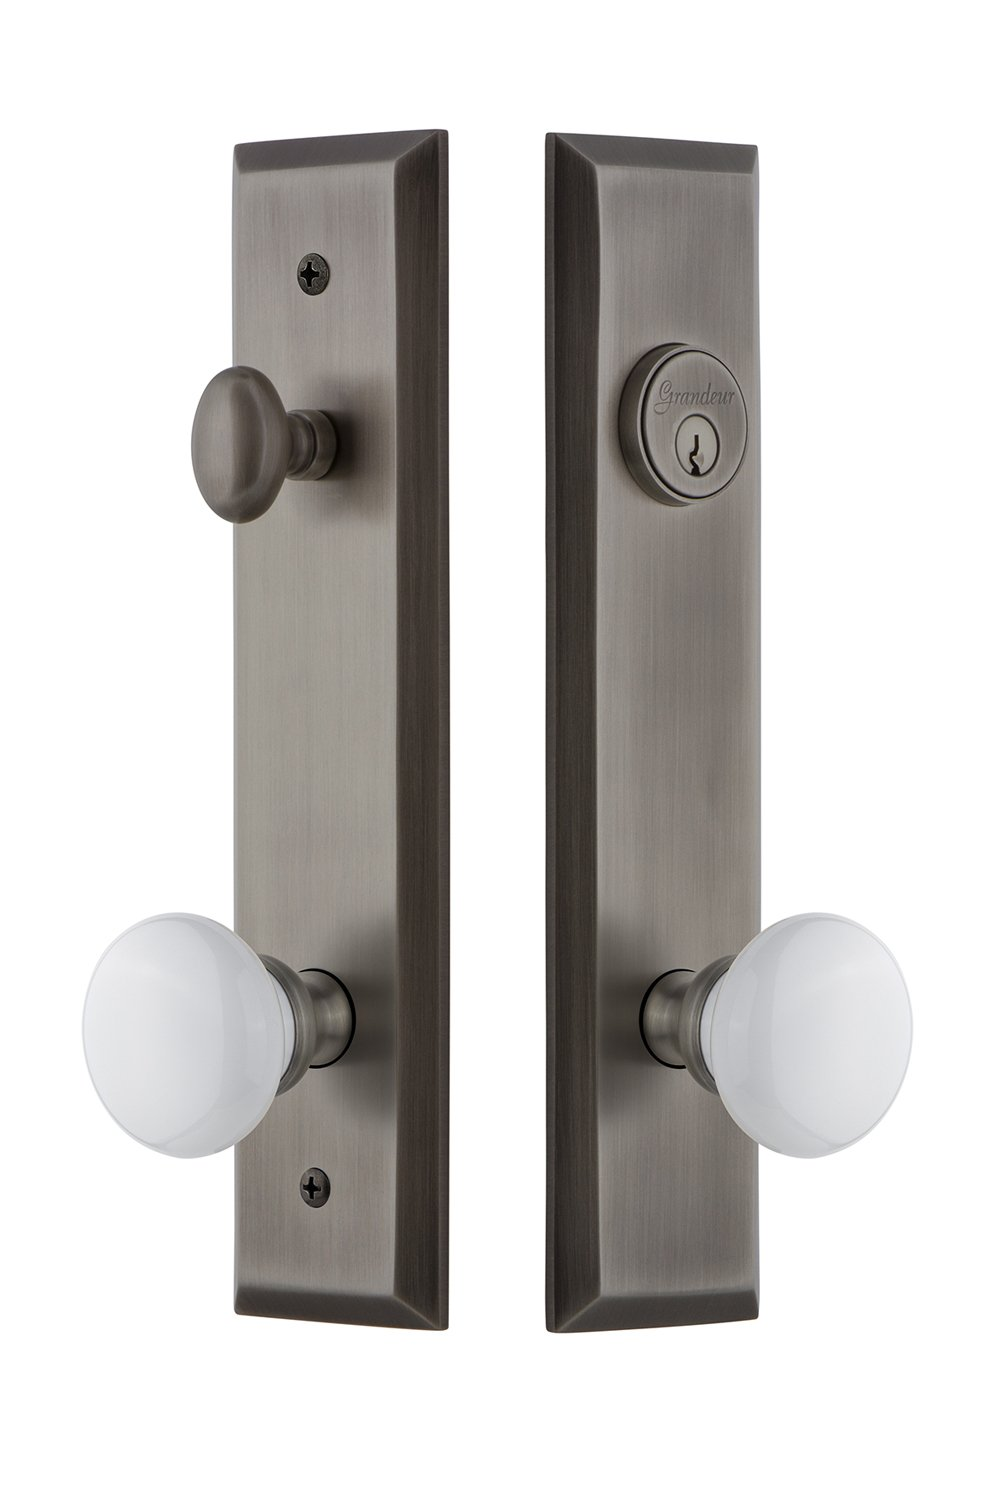 Grandeur Hardware 840835 Fifth Avenue Tall Plate Complete Entry Set with Hyde Park Knob Backset Size Timeless Bronze 2.75